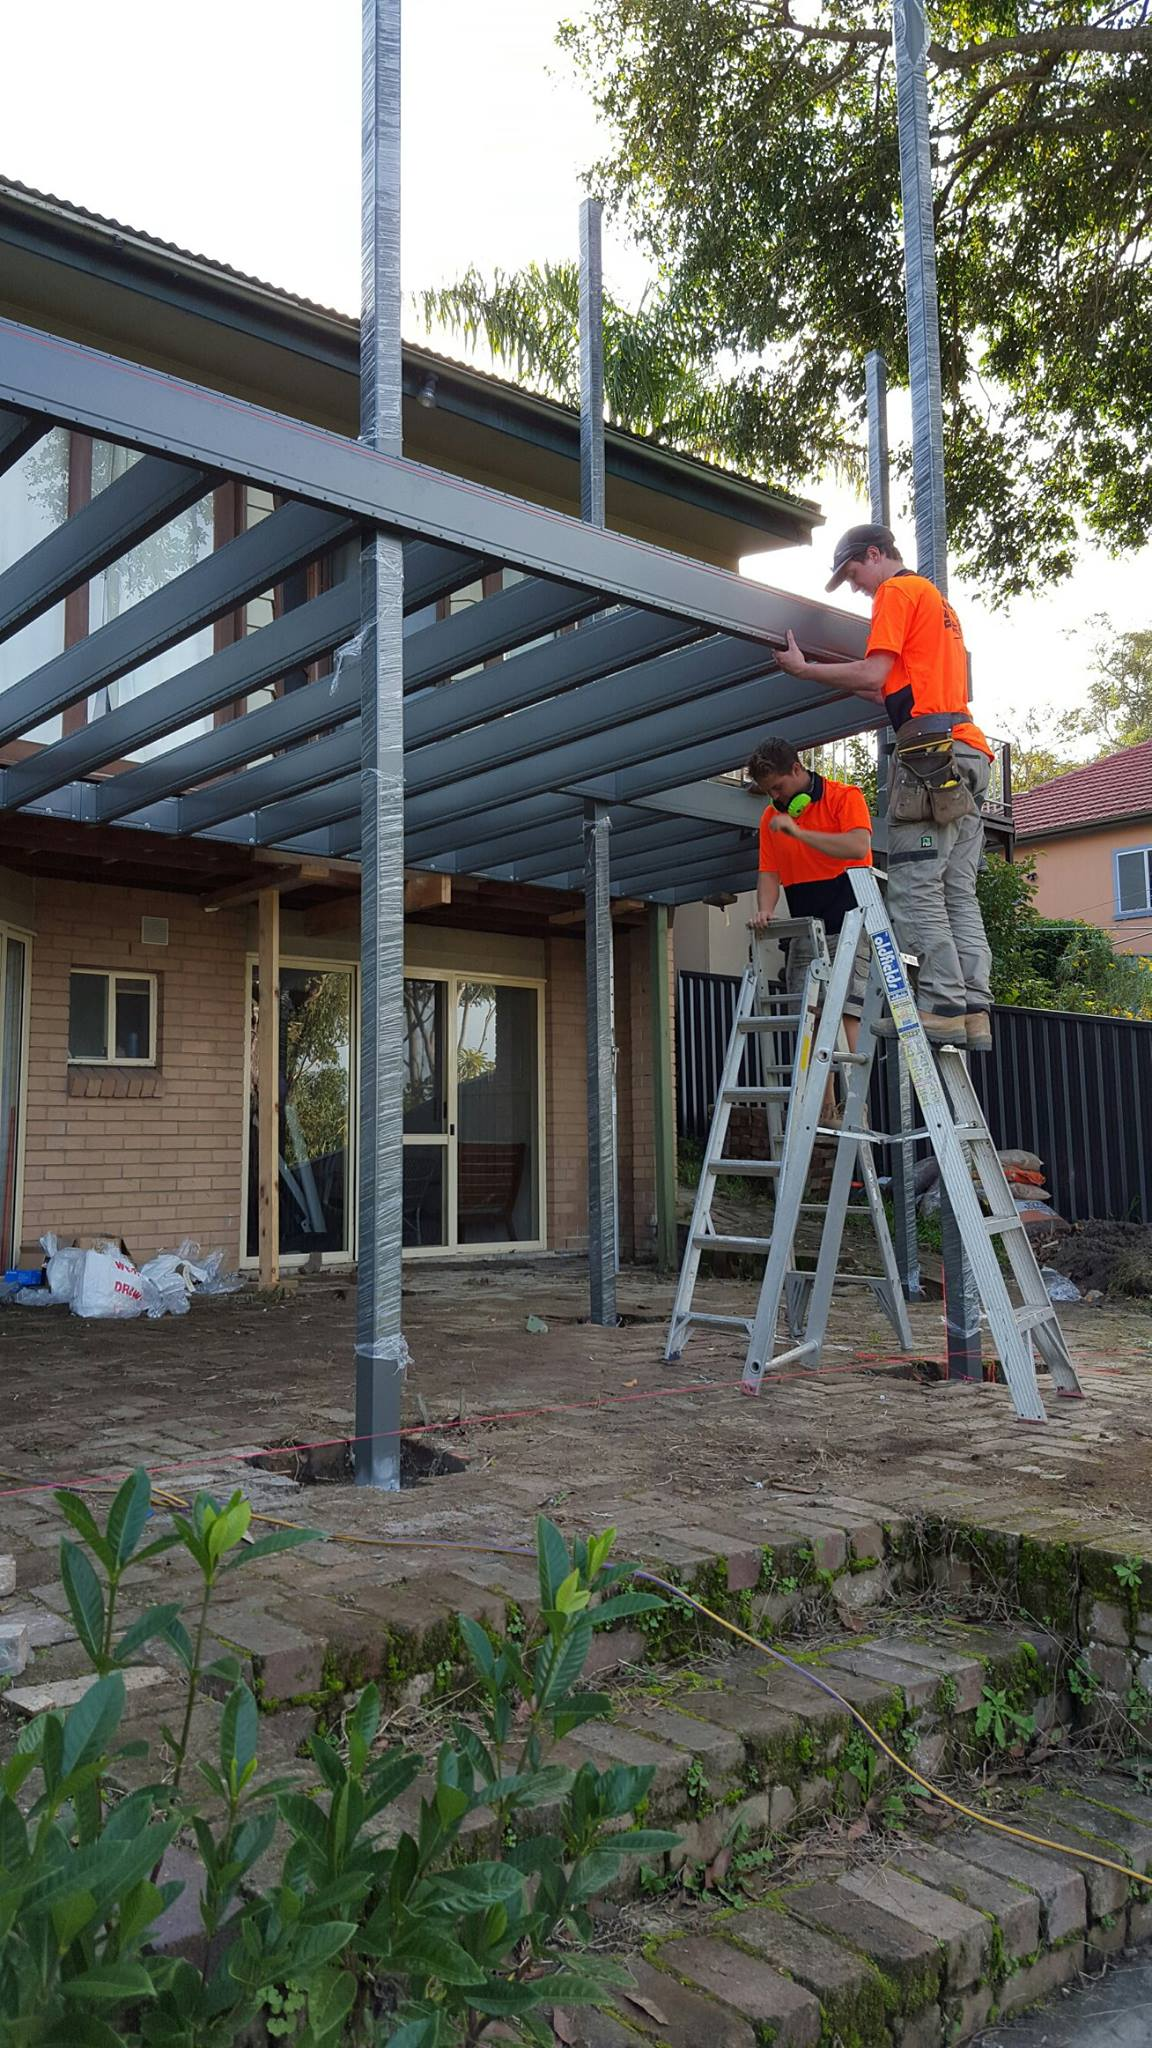 Powder coated two-story deck frame installation on existing home